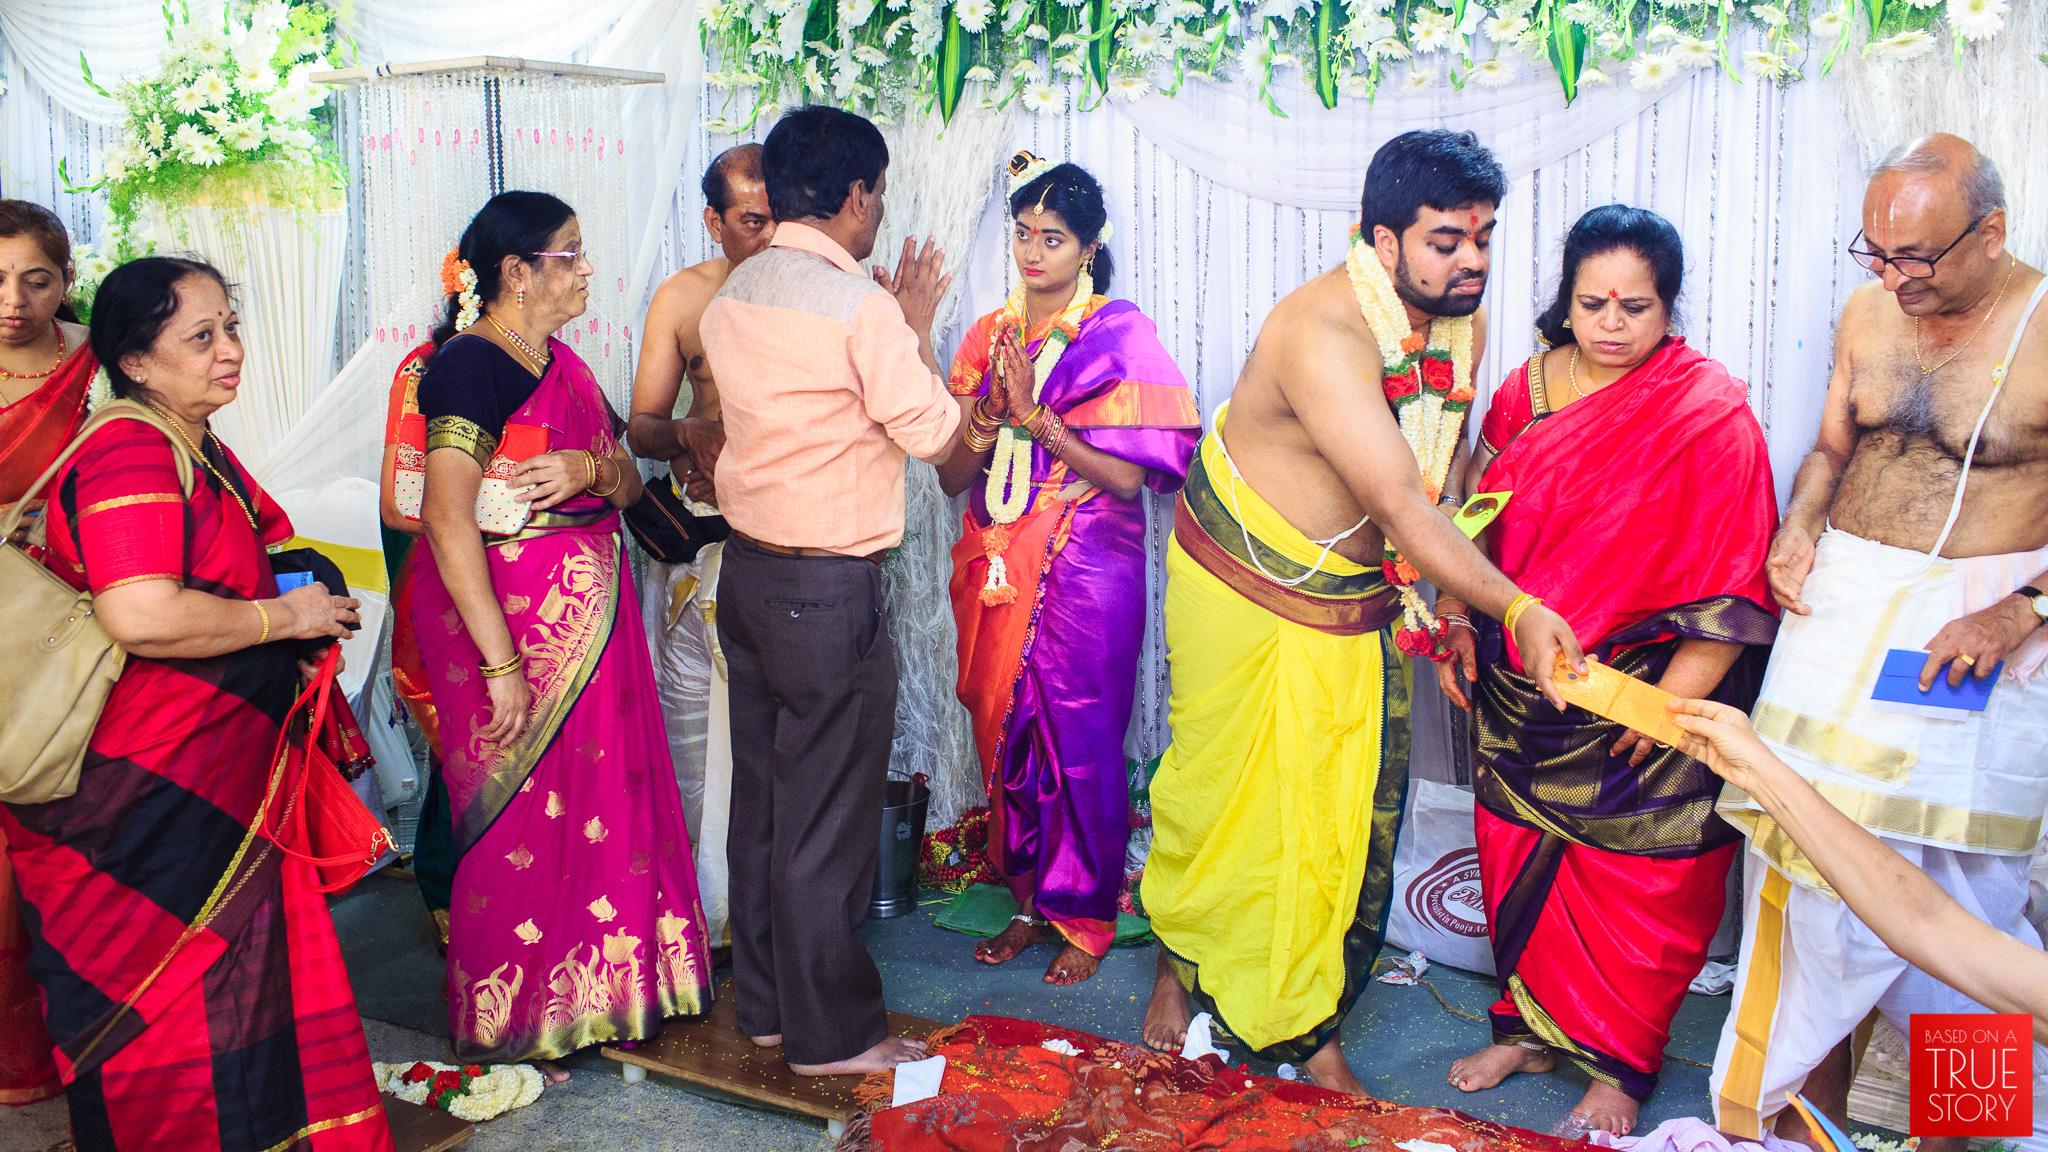 Tambrahm-Candid-Wedding-Photographers-Bangalore-0097.jpg